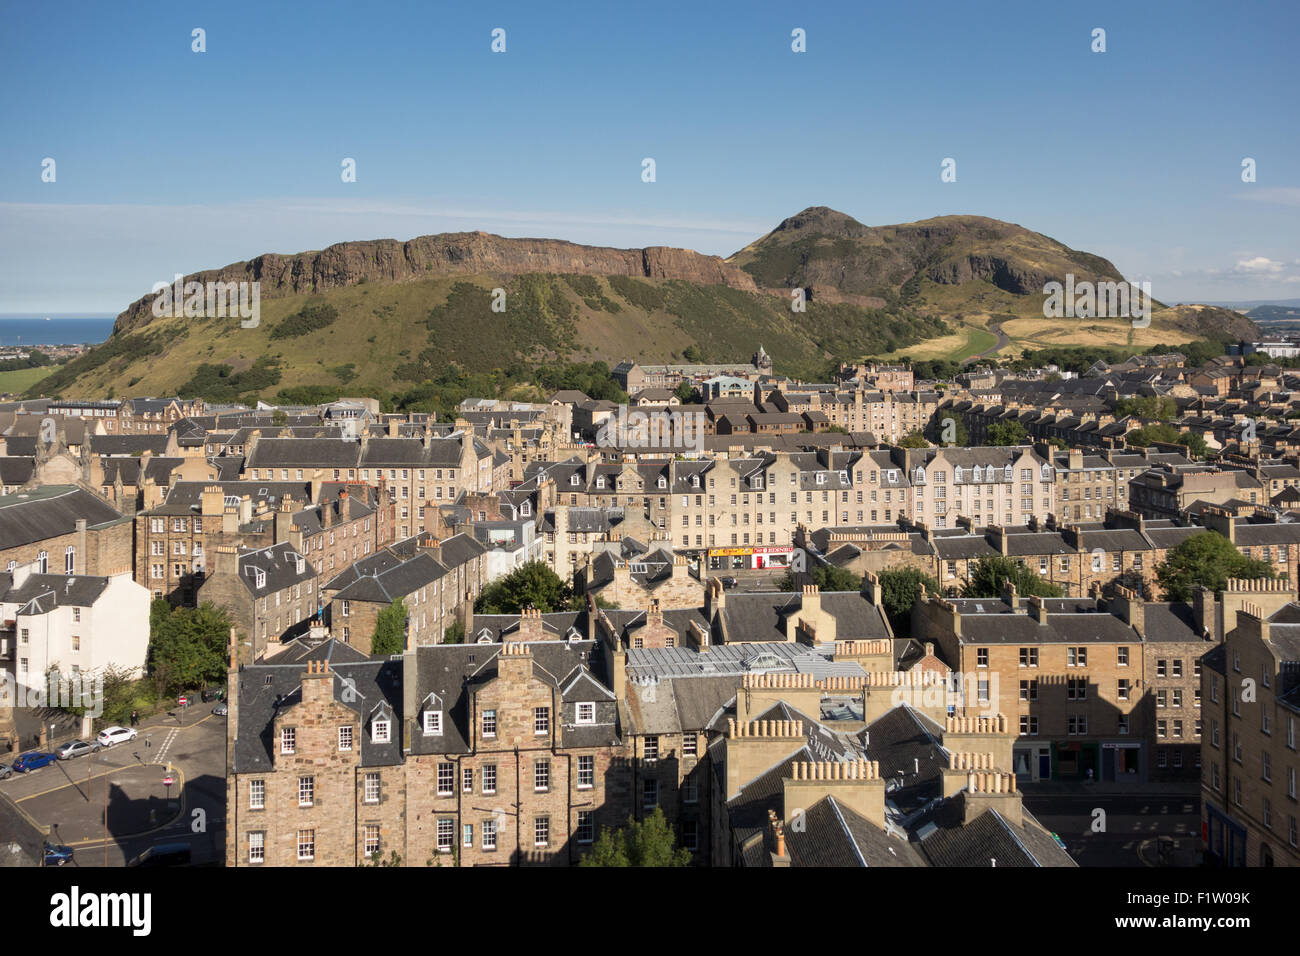 Edinburgh - Arthurs Seat and Salisbury Crags, houses, buildings, flats apartments in the Old Town - Stock Image